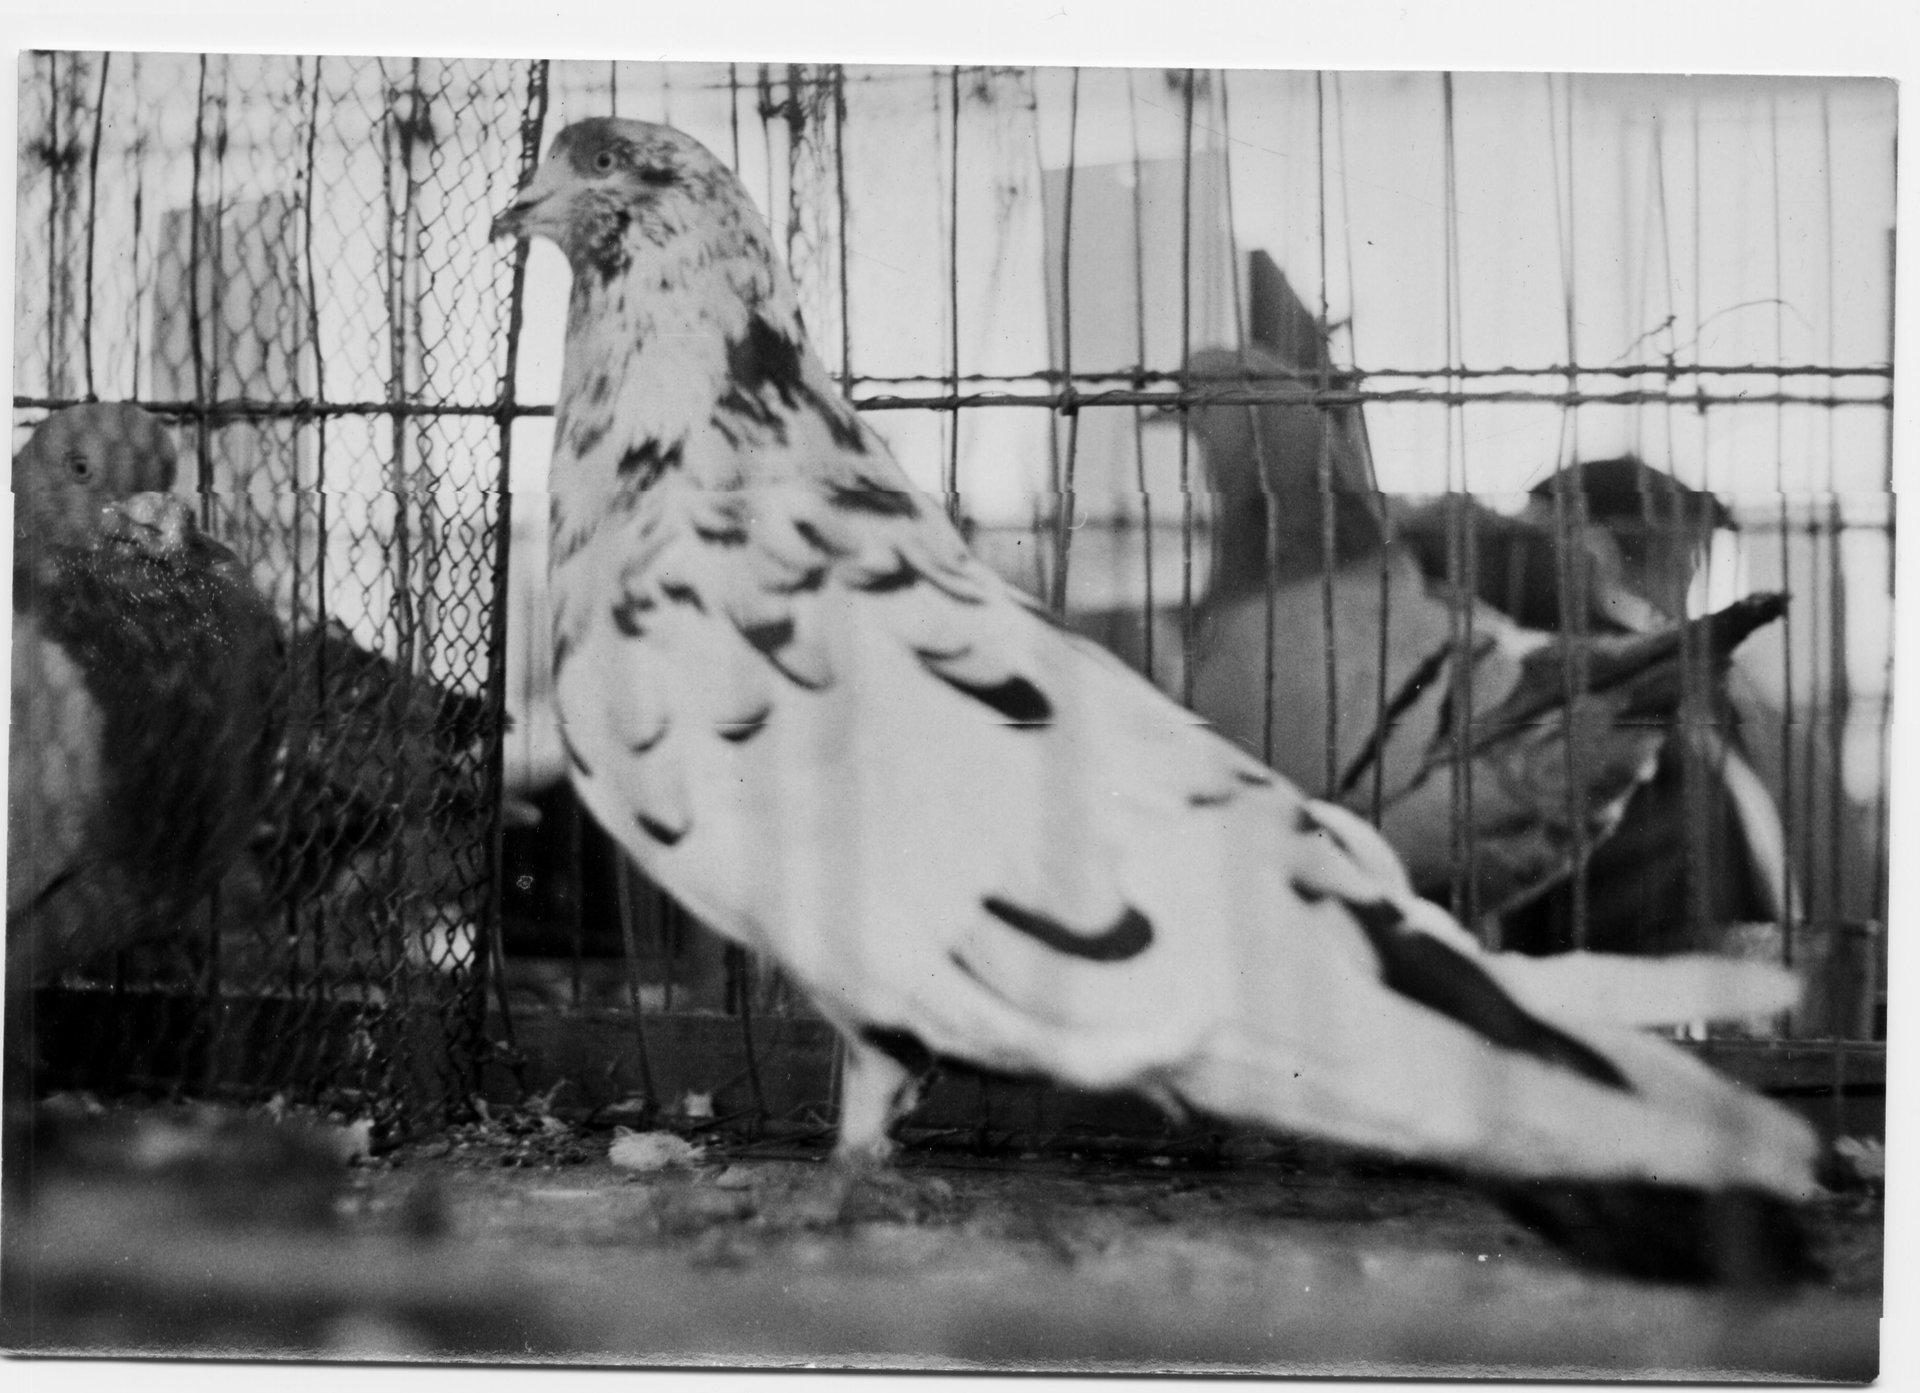 Petra Feriancová, Series Creator – From the Archive of O. Ferianc, New Breeds 1949-1952, 2008, (34/112)